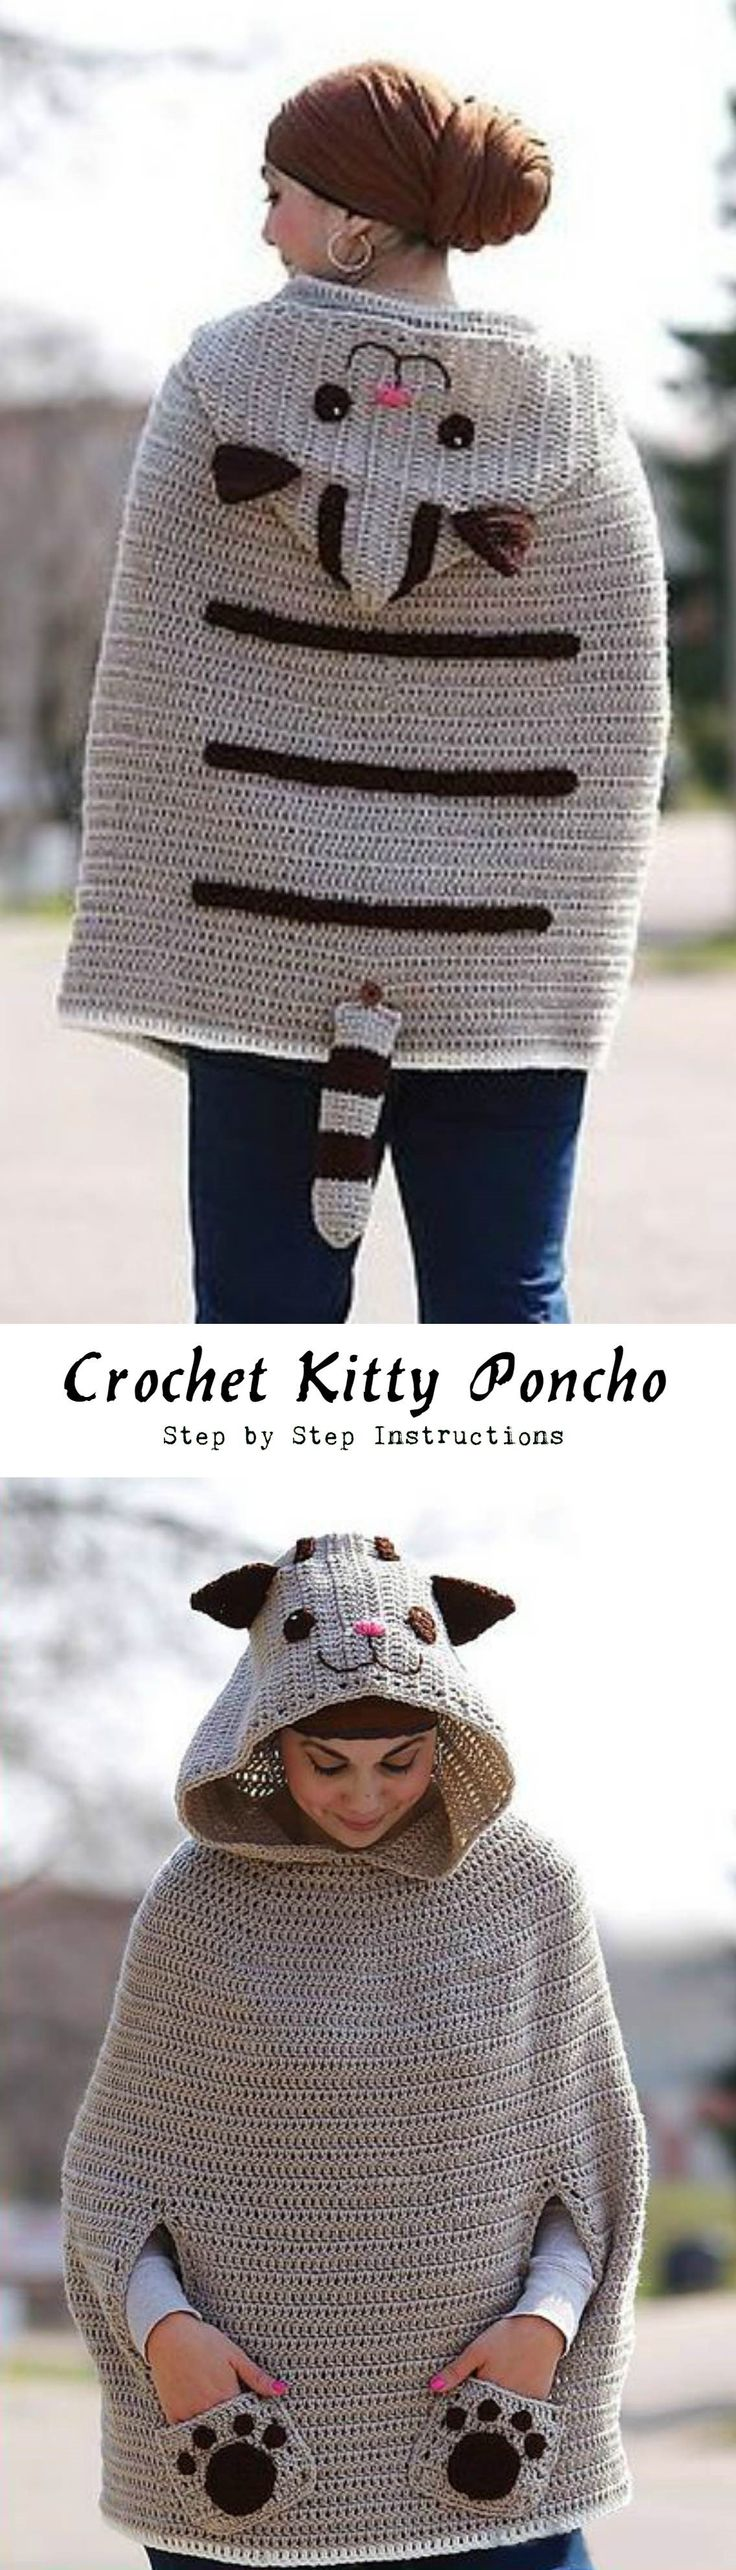 Crochet Kitty Poncho